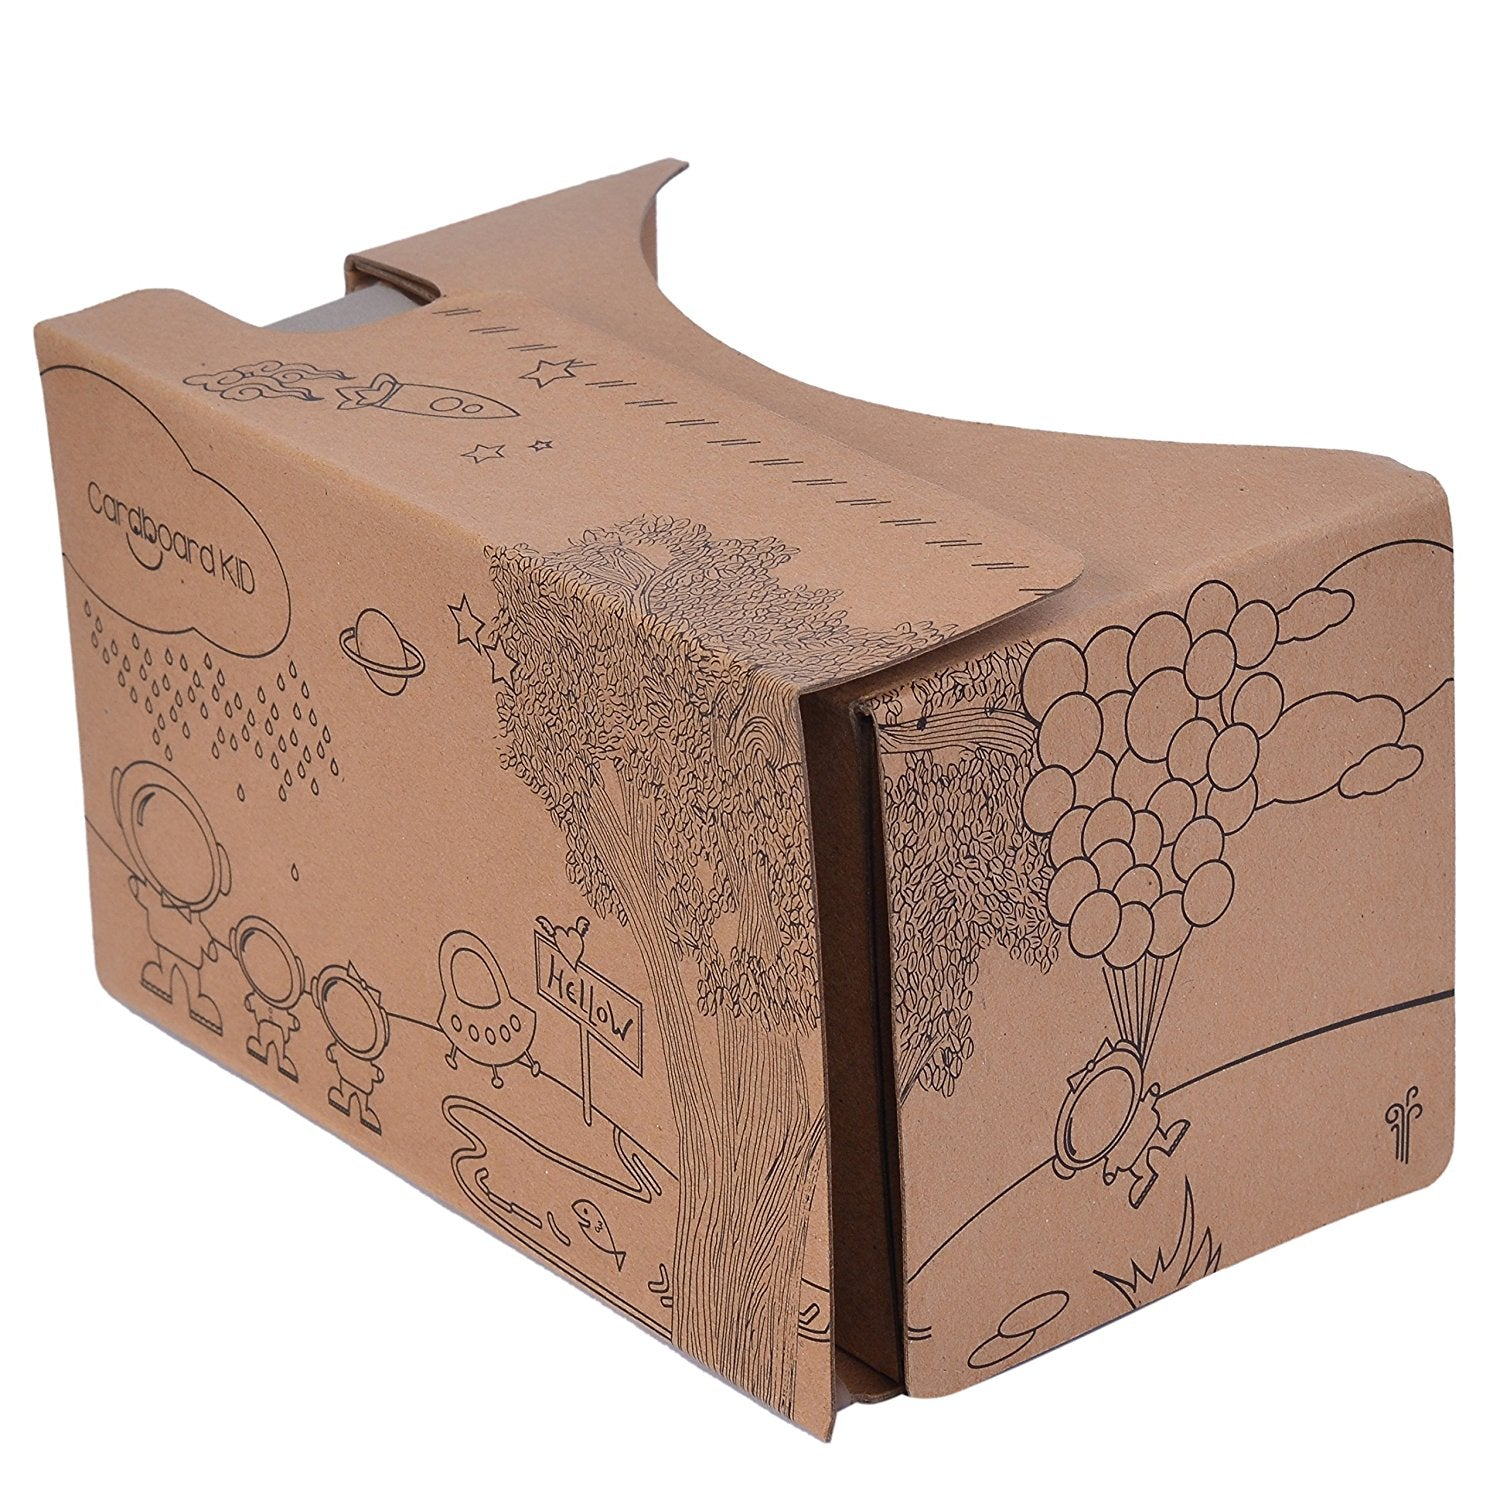 Wedyut VR Cardboard | Based on Google Cardboard V1 | Virtual Reality Headset | No Button | Perfect for movies, videos, pictures and games